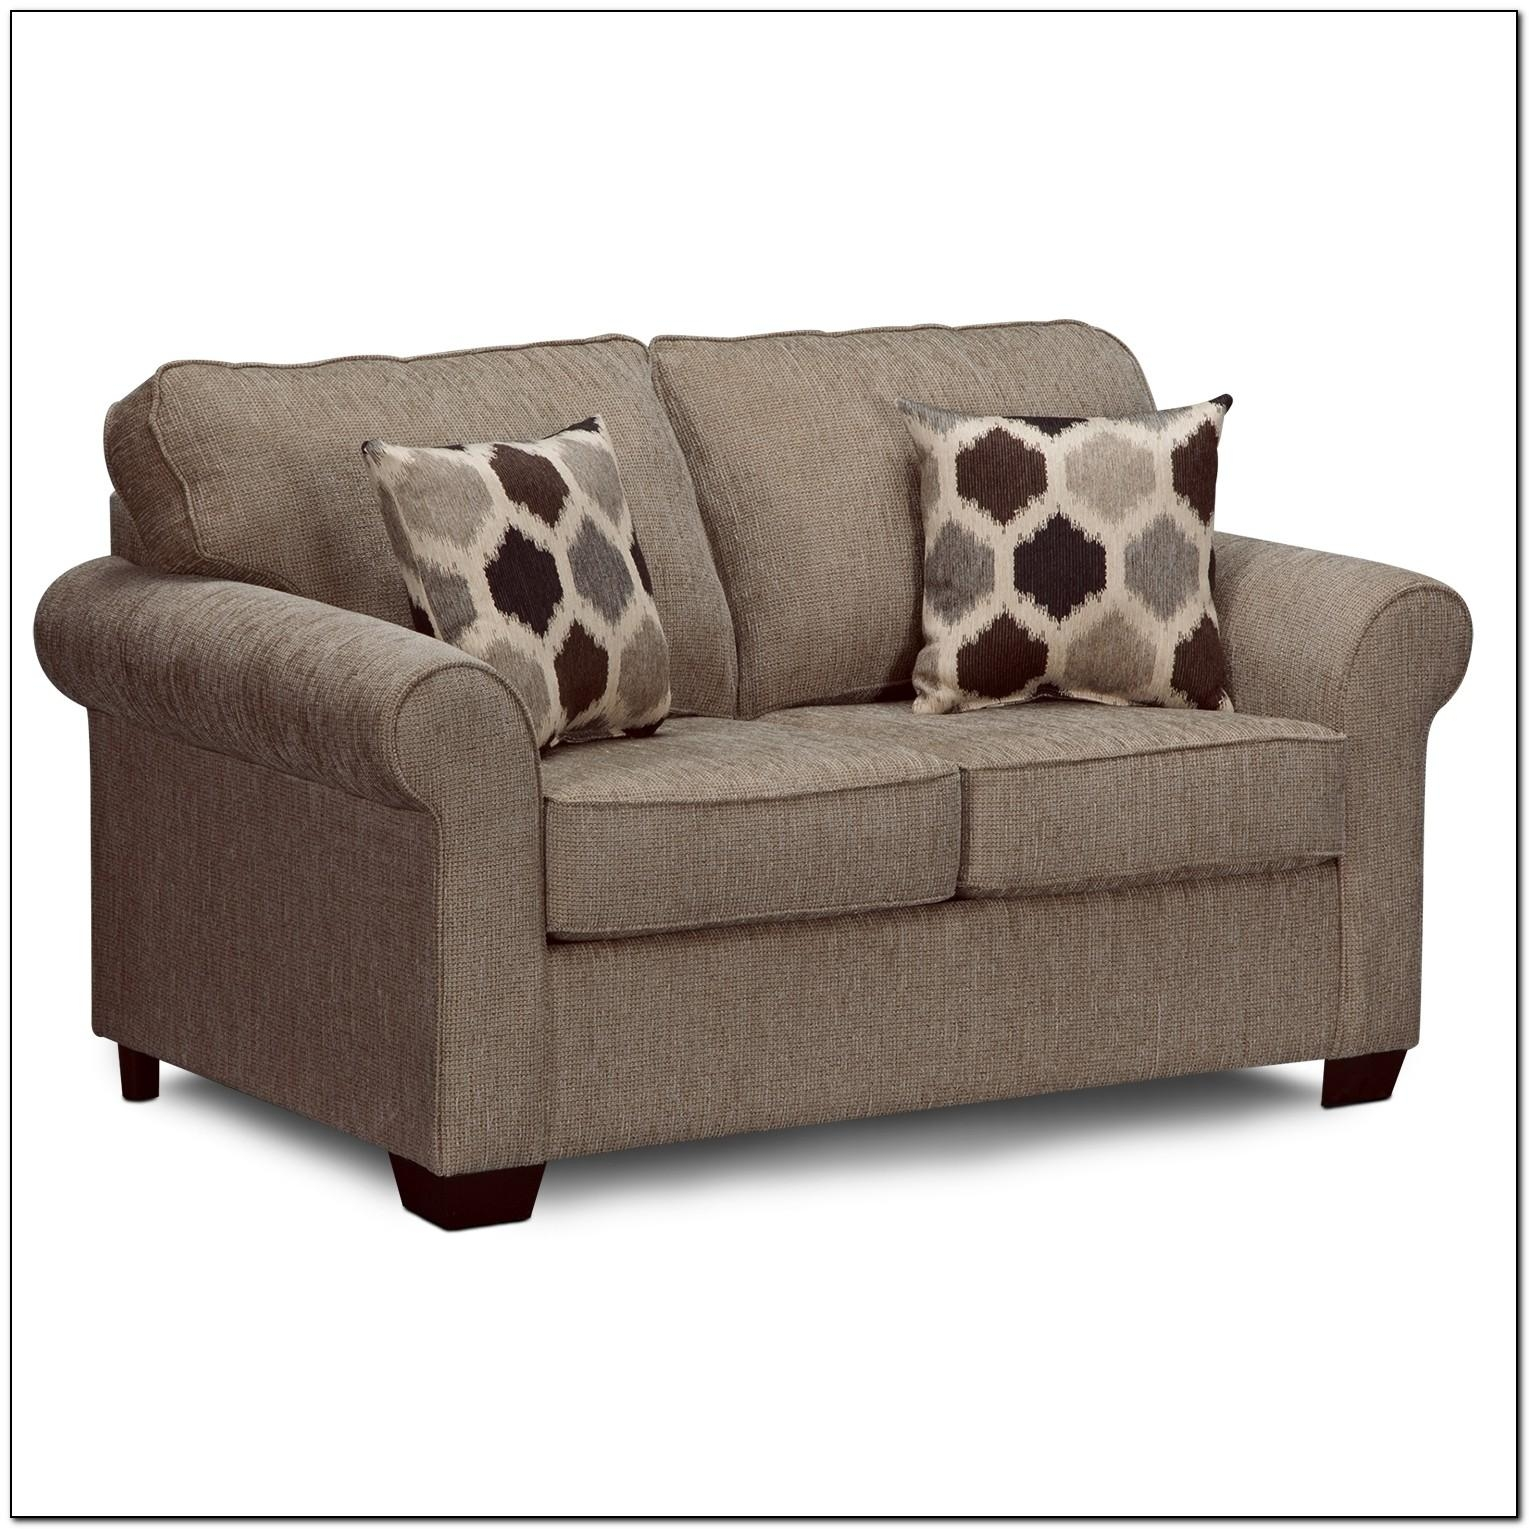 20 Best Ideas Sears Sofa